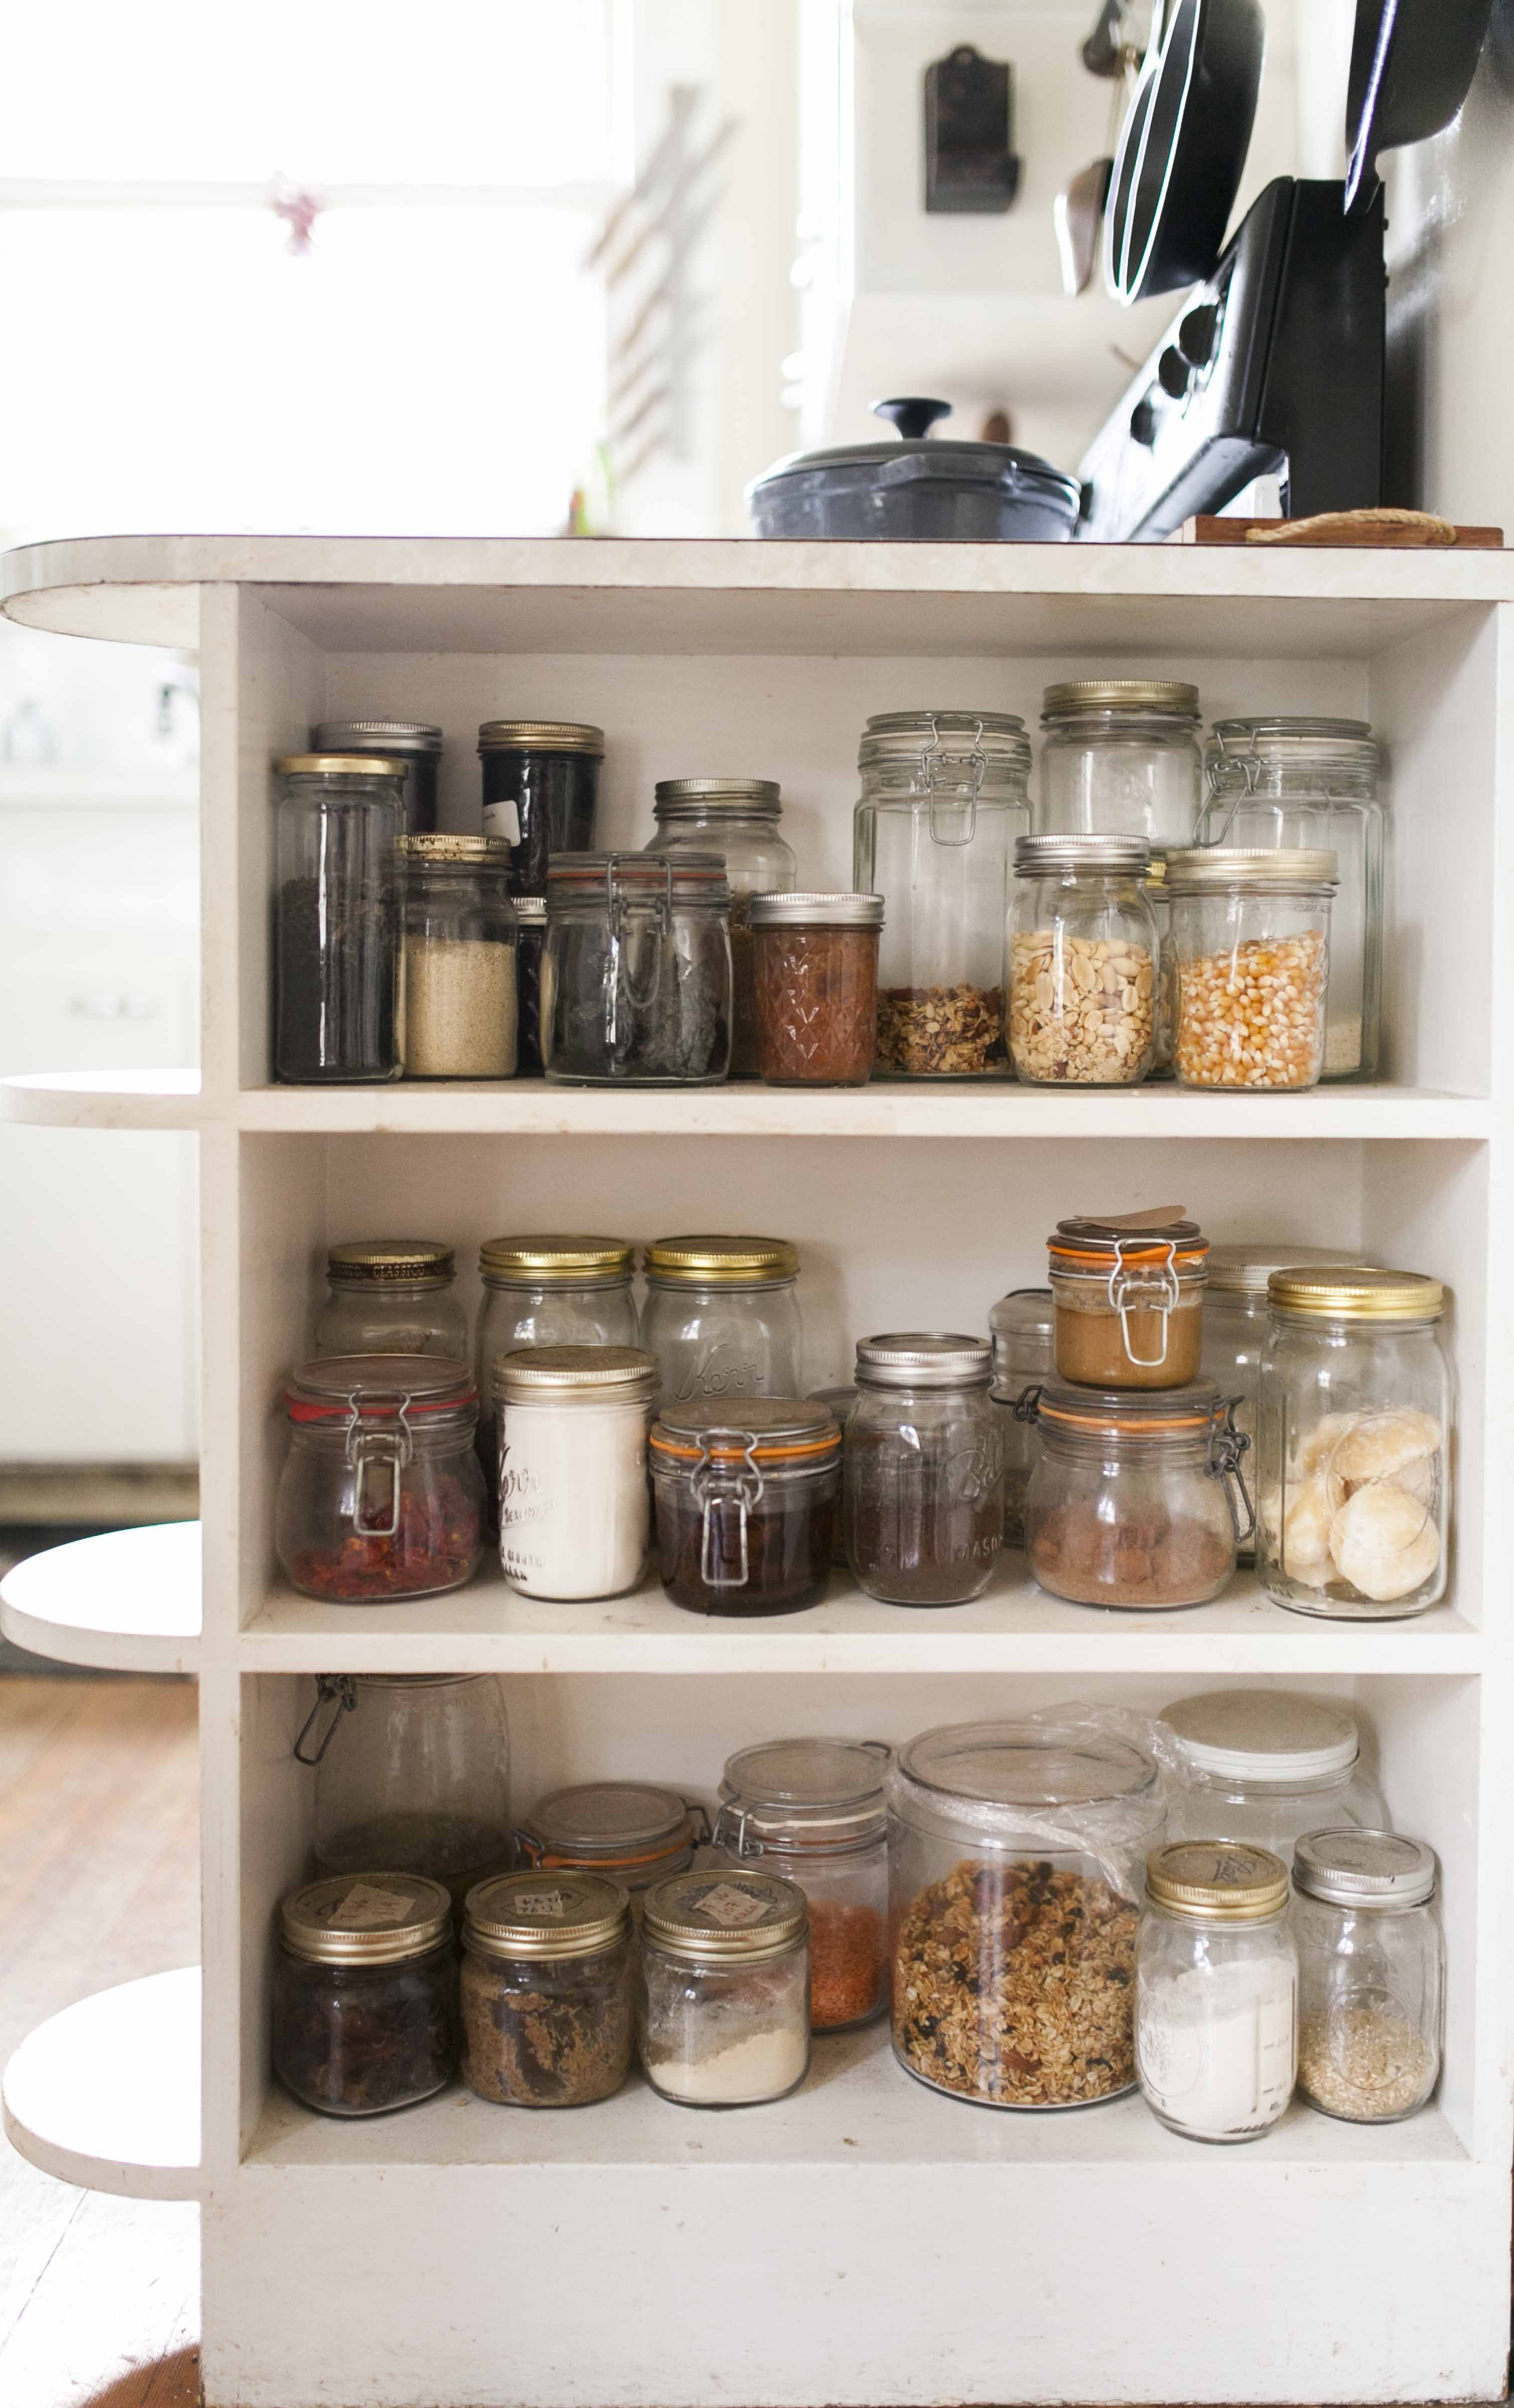 Ikea Metod Bank 5 Ingenious Budget Pantries Created With Ikea Basics Kitchn